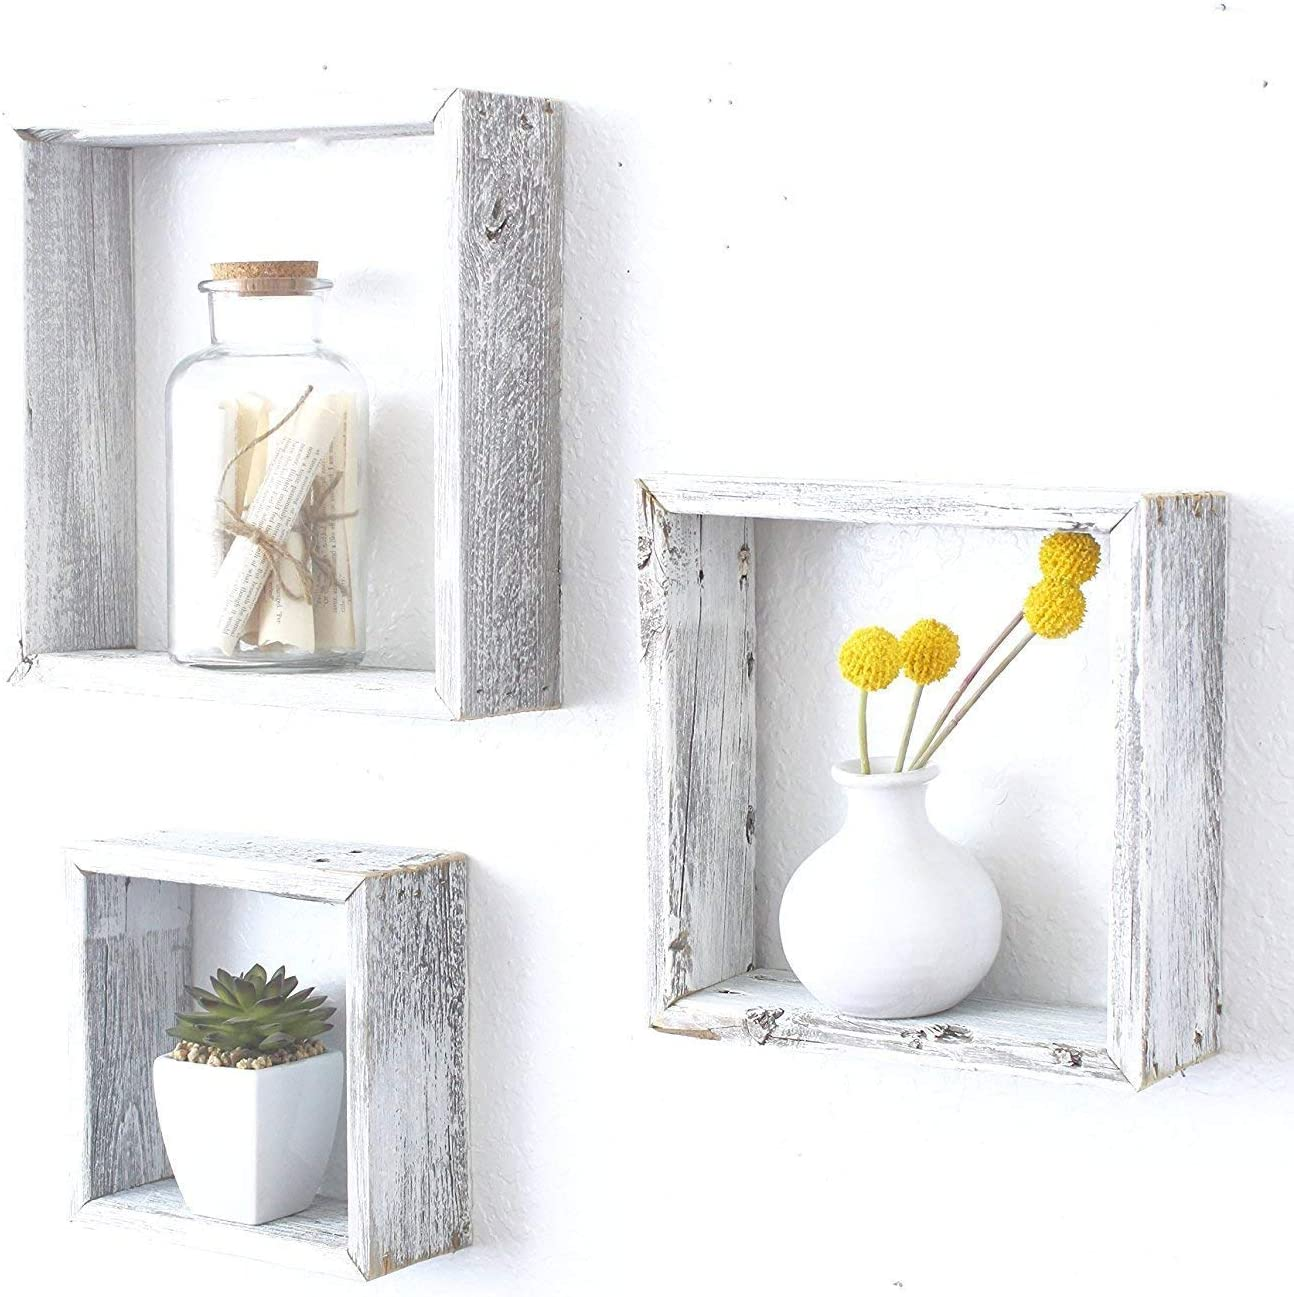 BarnwoodUSA Whitewash Rustic Shelves, Square Floating Wood Shadowbox, Home Decor, Set of 3